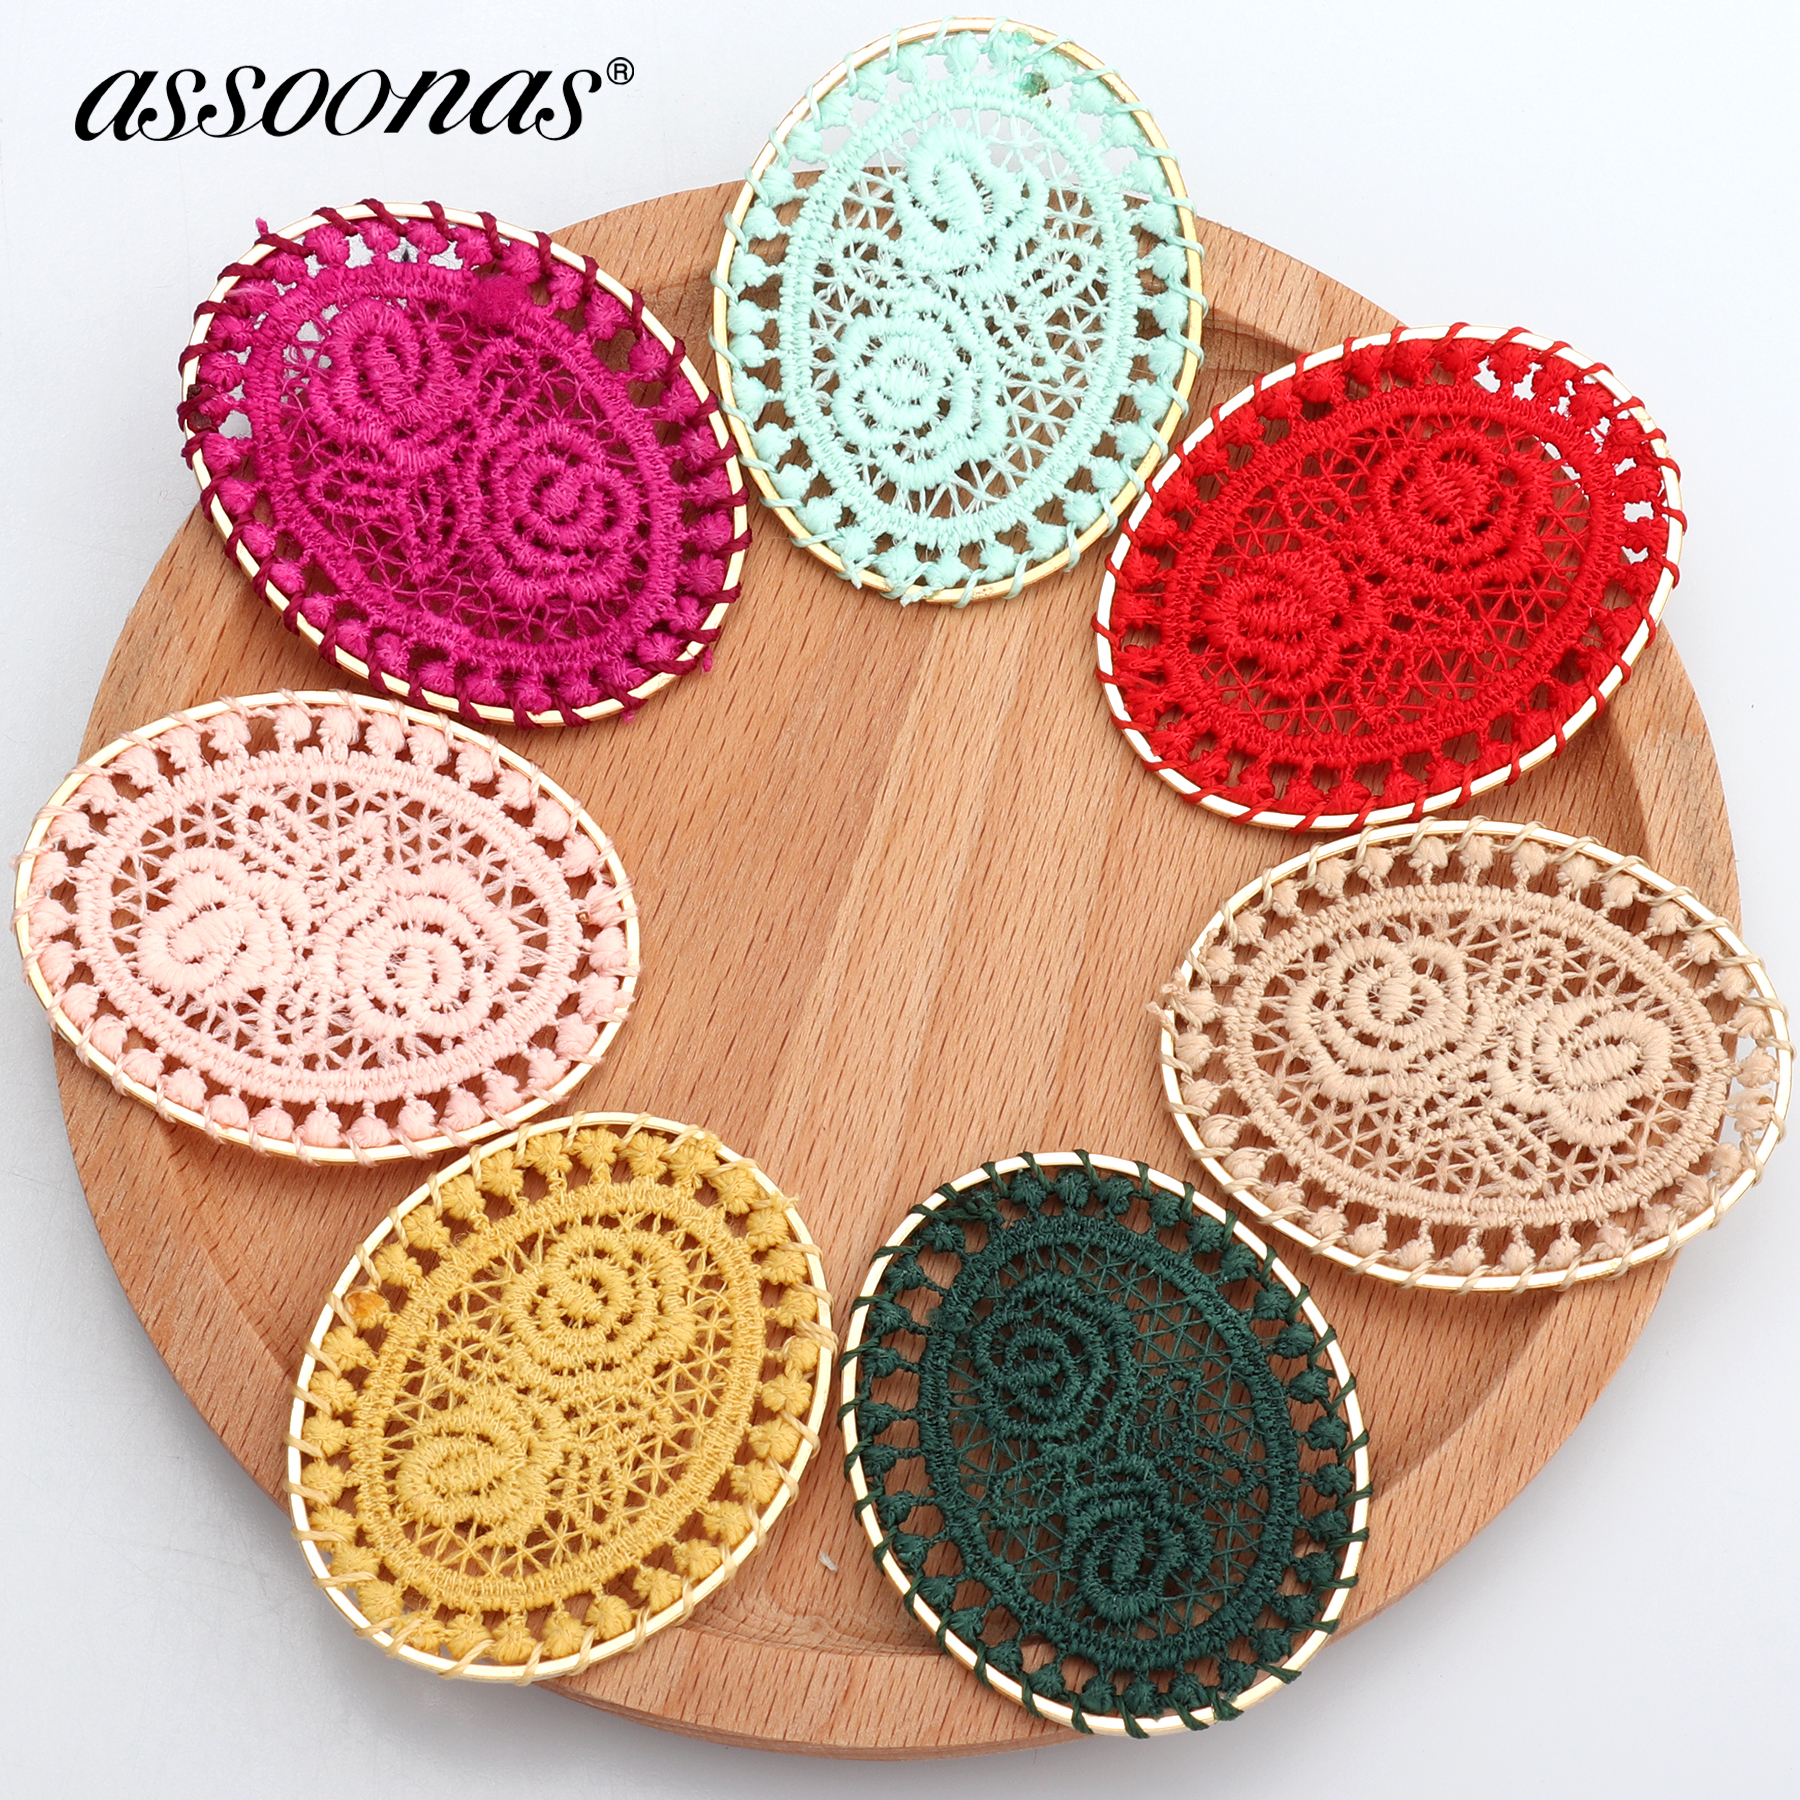 Assoonas M367,jewelry Accessories,jewelry Making,diy Home Clothing Decorative,oval Shape Patch,charm,jewelry Findings,10pcs/lot